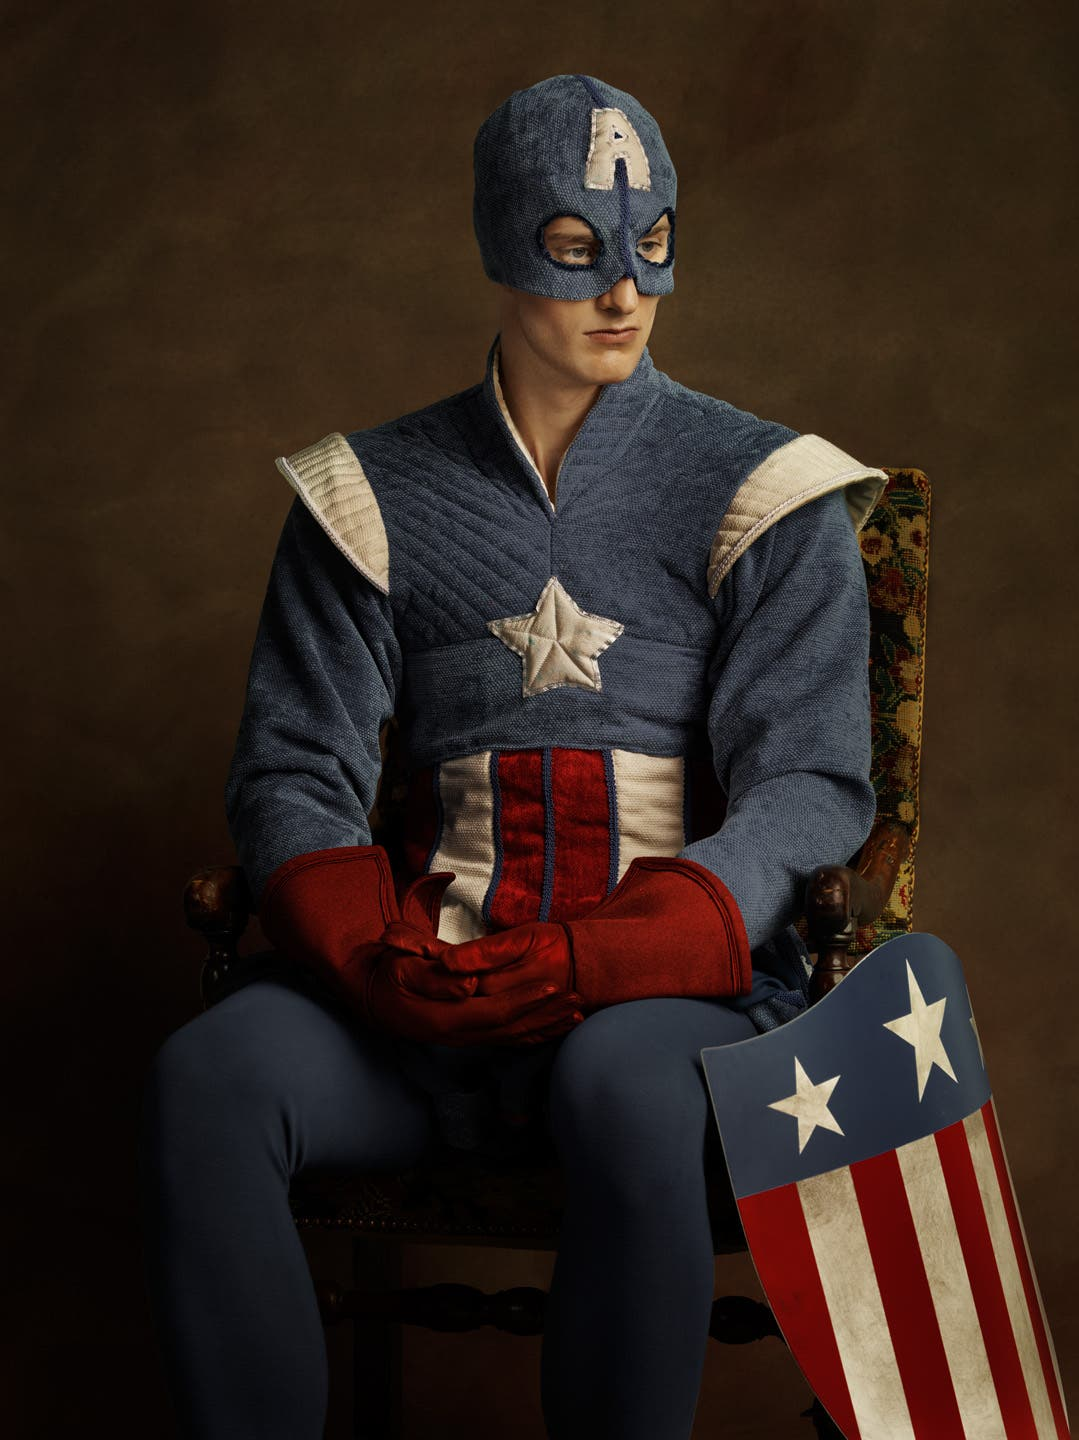 15_07_13_Super Héros Flamands _03_Captain_America_0130_06